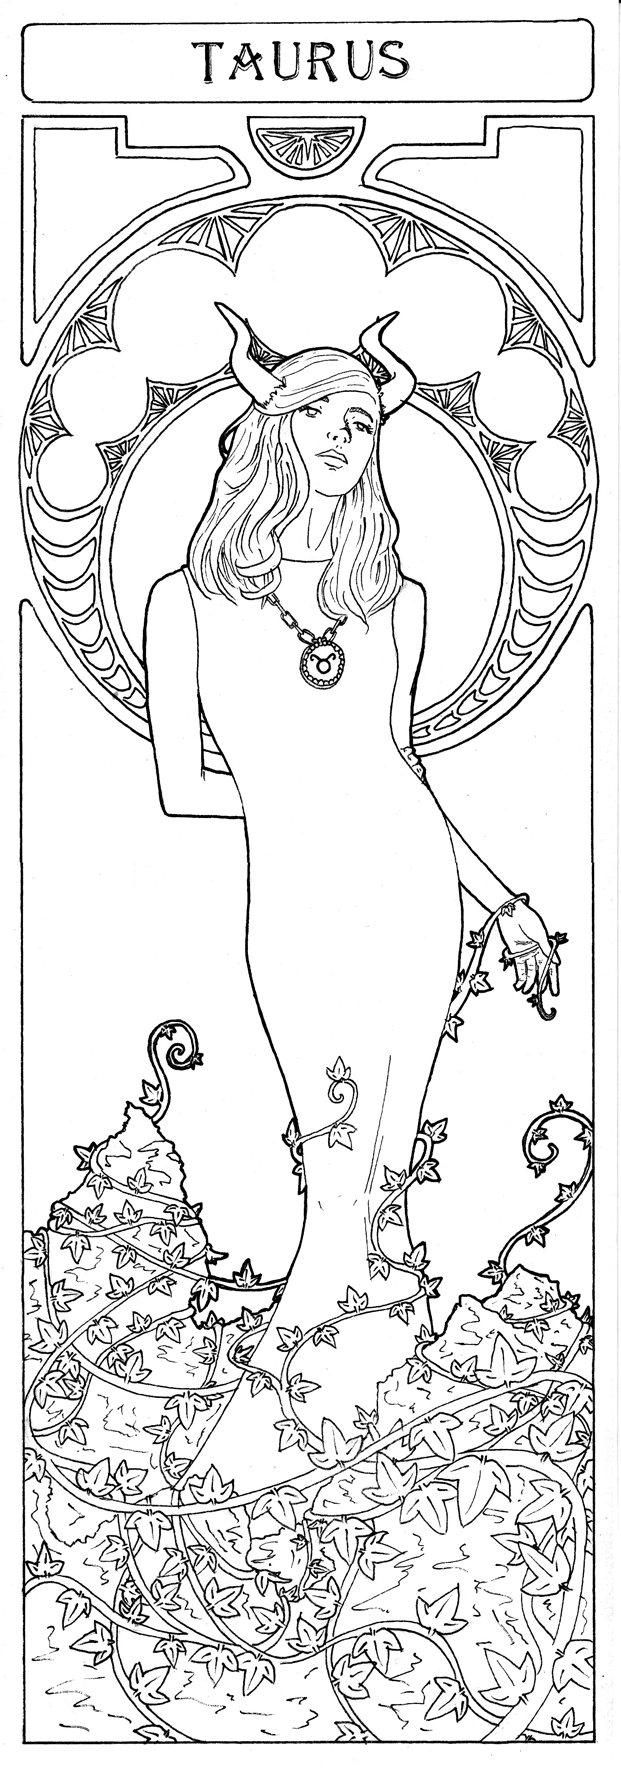 taurus zodiac coloring pages the power of the earth element taurus art zodiac art coloring pages zodiac taurus